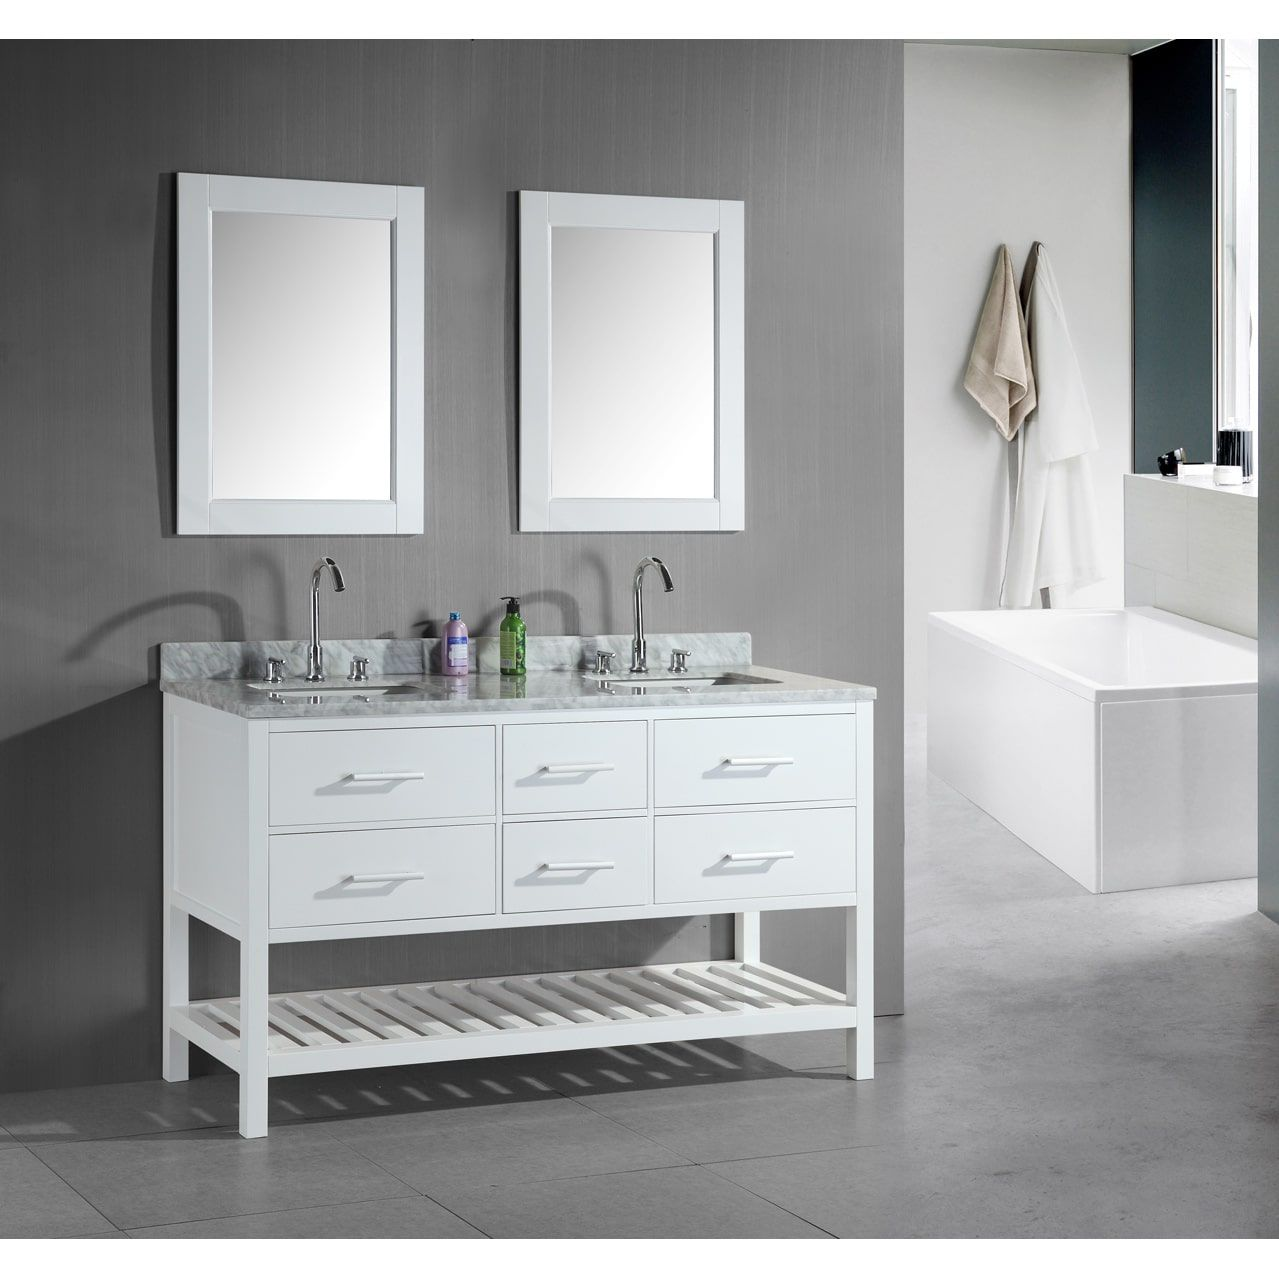 image of 60 inch double sink vanity in white